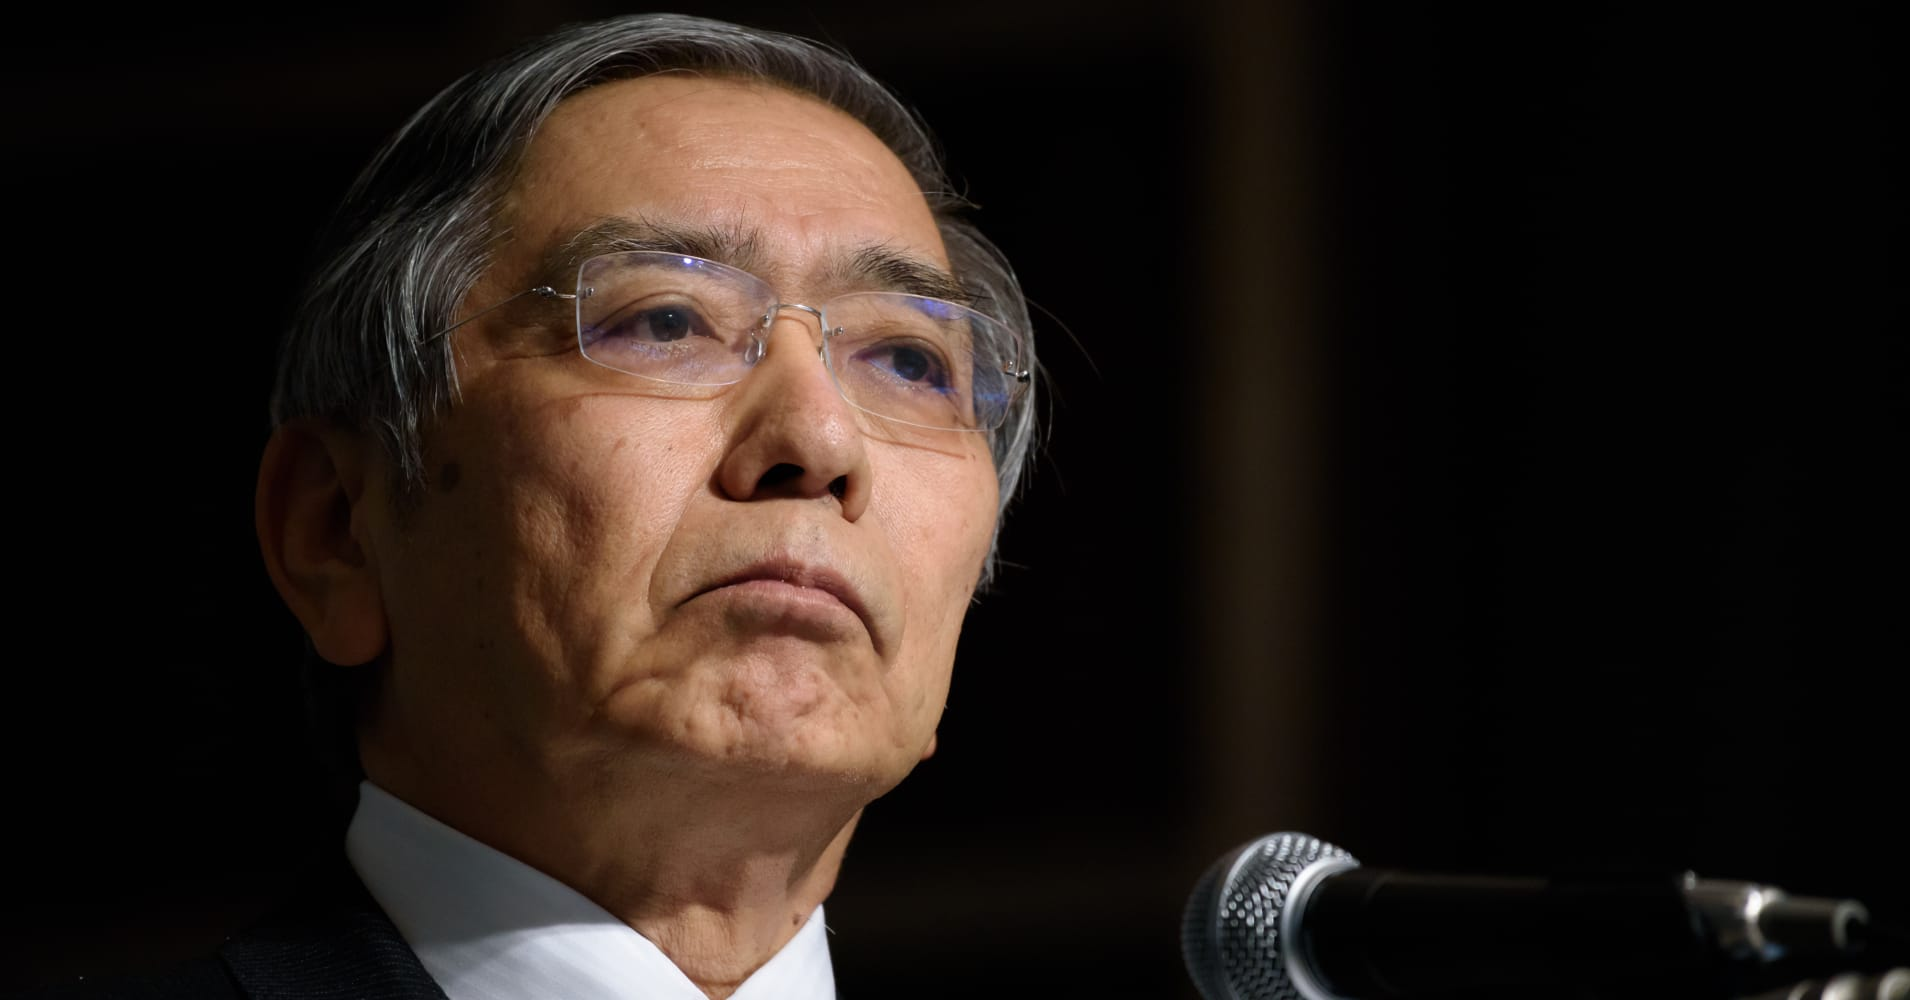 BOJ's Kuroda blames stock rout on heightening global uncertainty